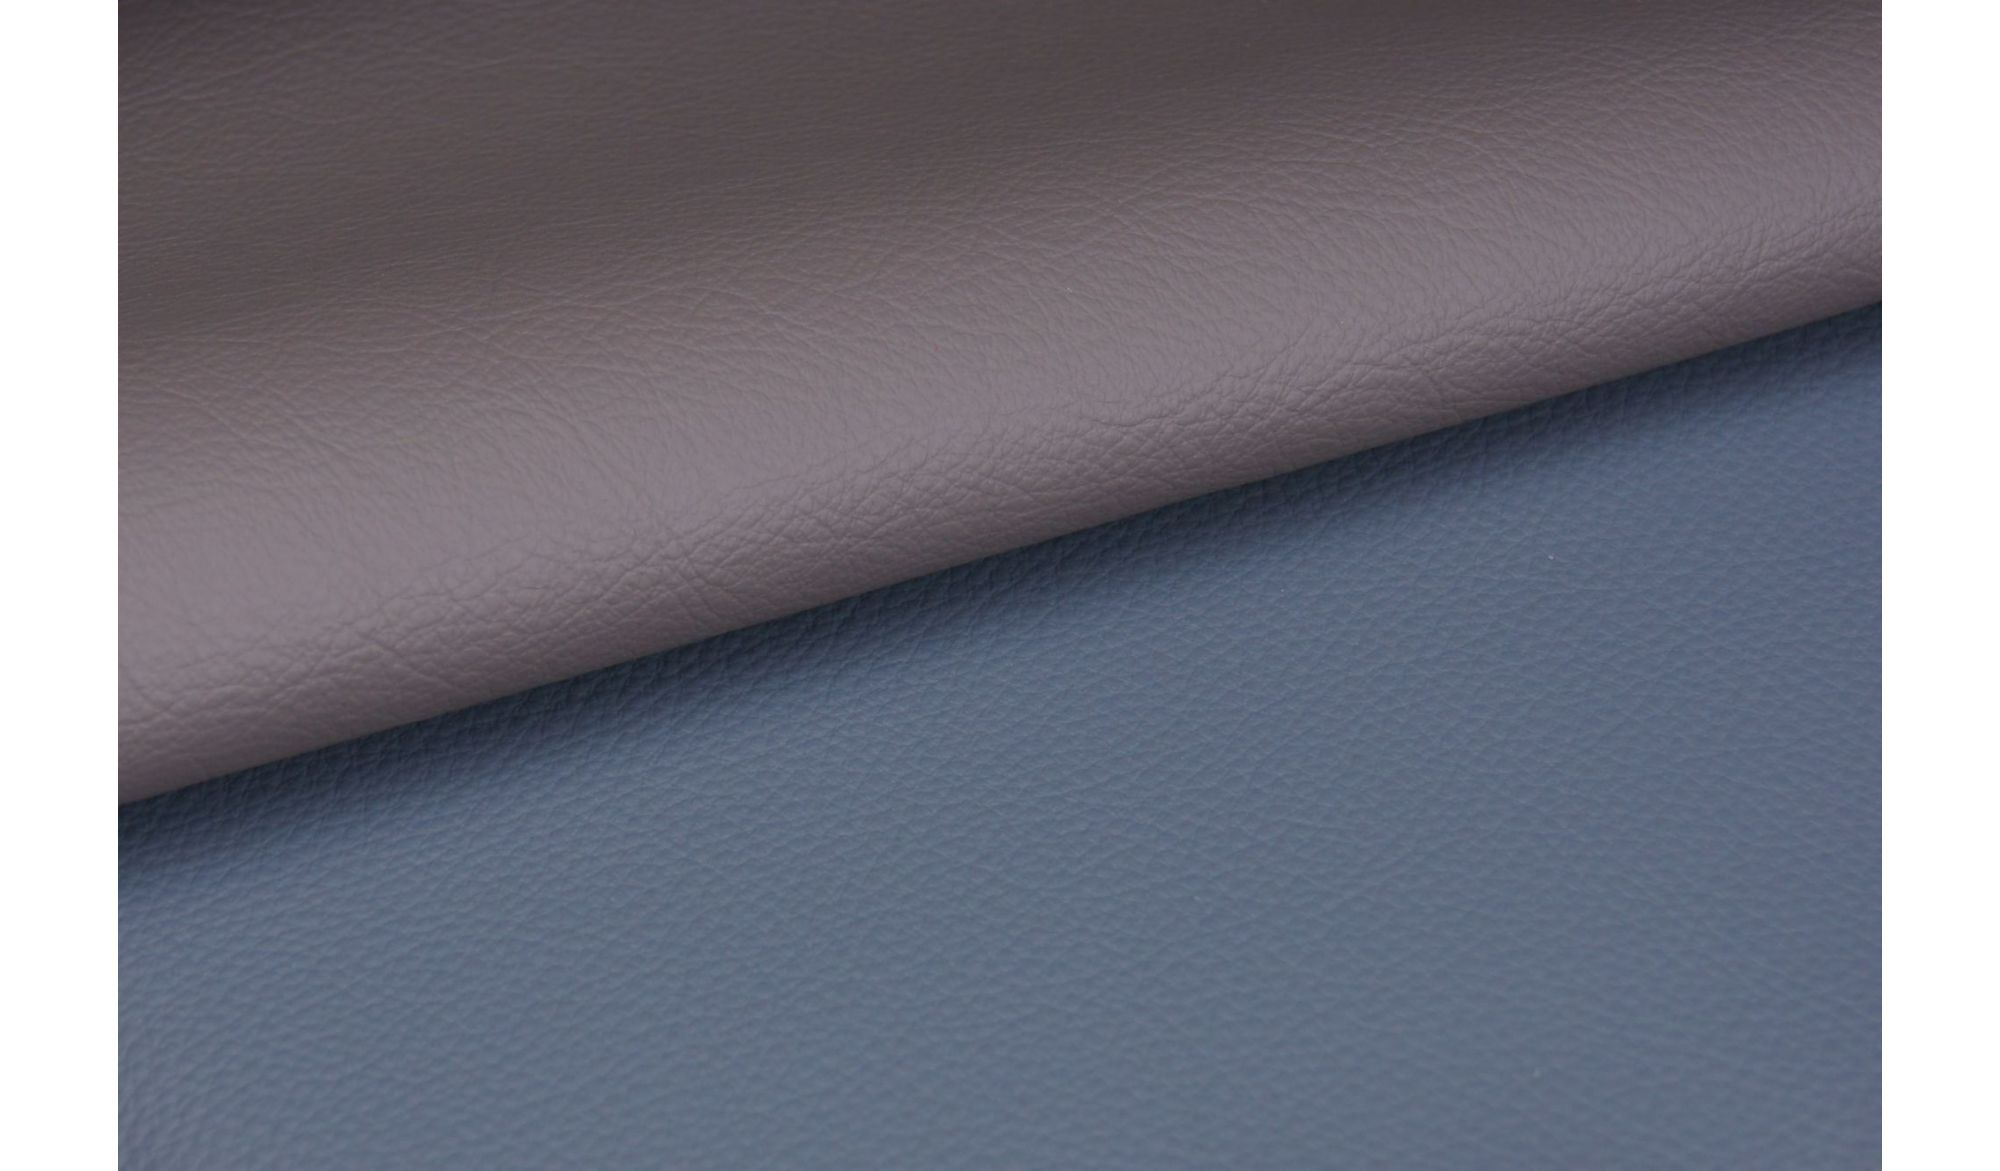 SKÓRA PALOMA Night Shade 55185 - Leather alt_skory_kolor_night shade 55185 Upholstery IMO Plain - Default